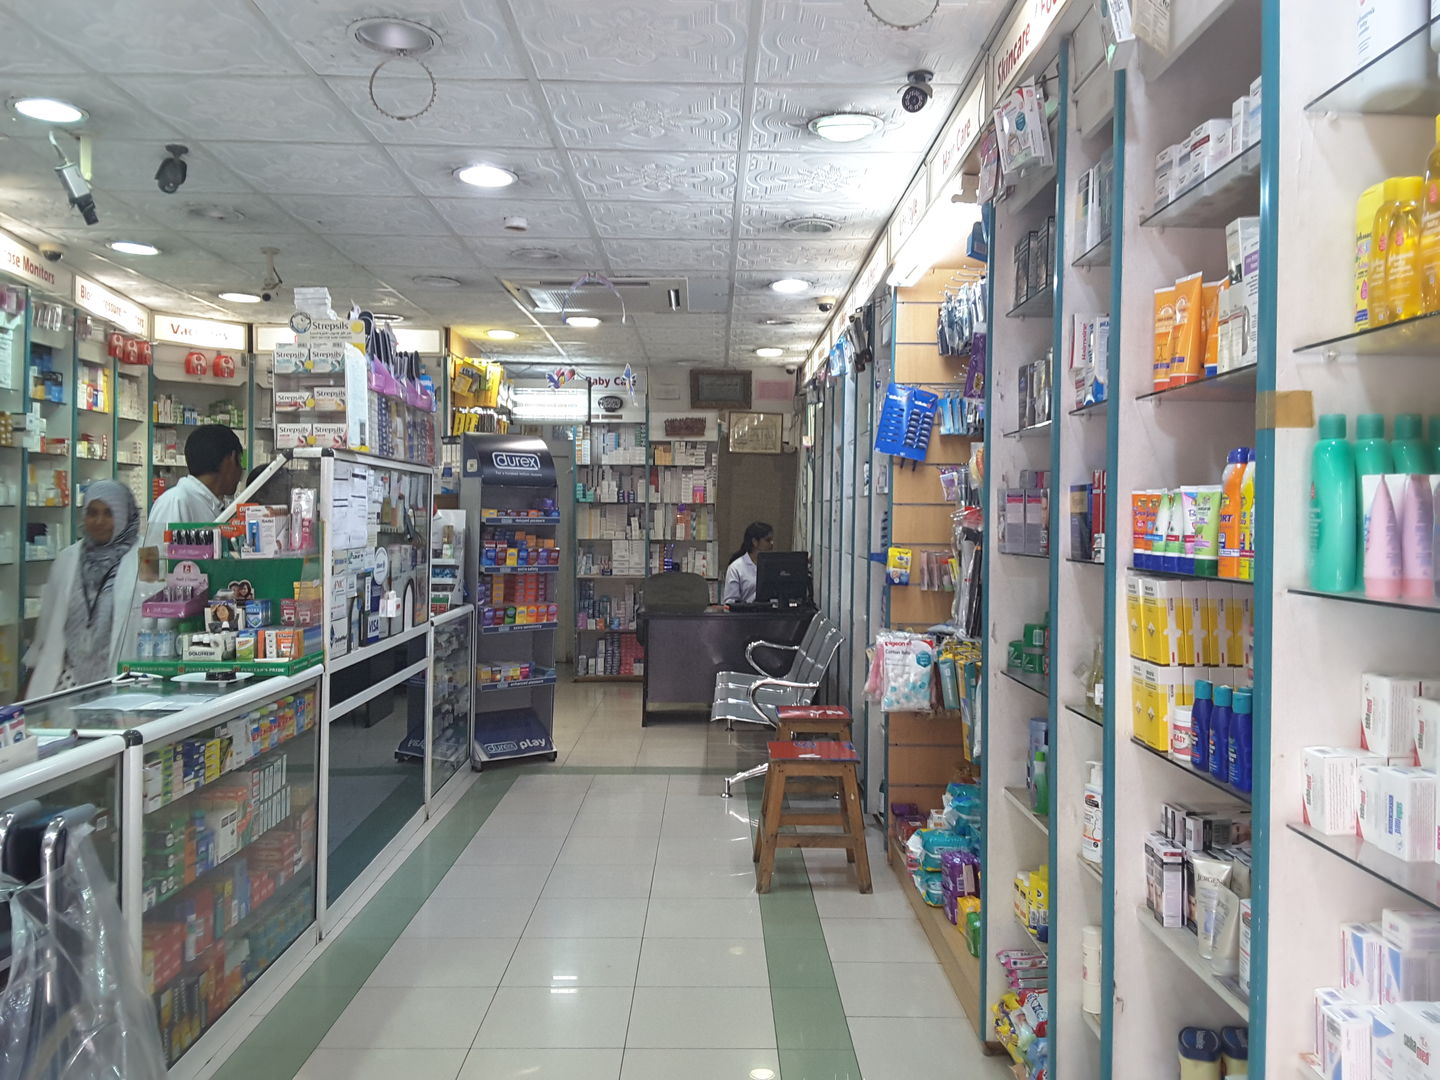 HiDubai-business-asia-pharmacy-beauty-wellness-health-pharmacy-meena-bazar-al-souq-al-kabeer-dubai-2